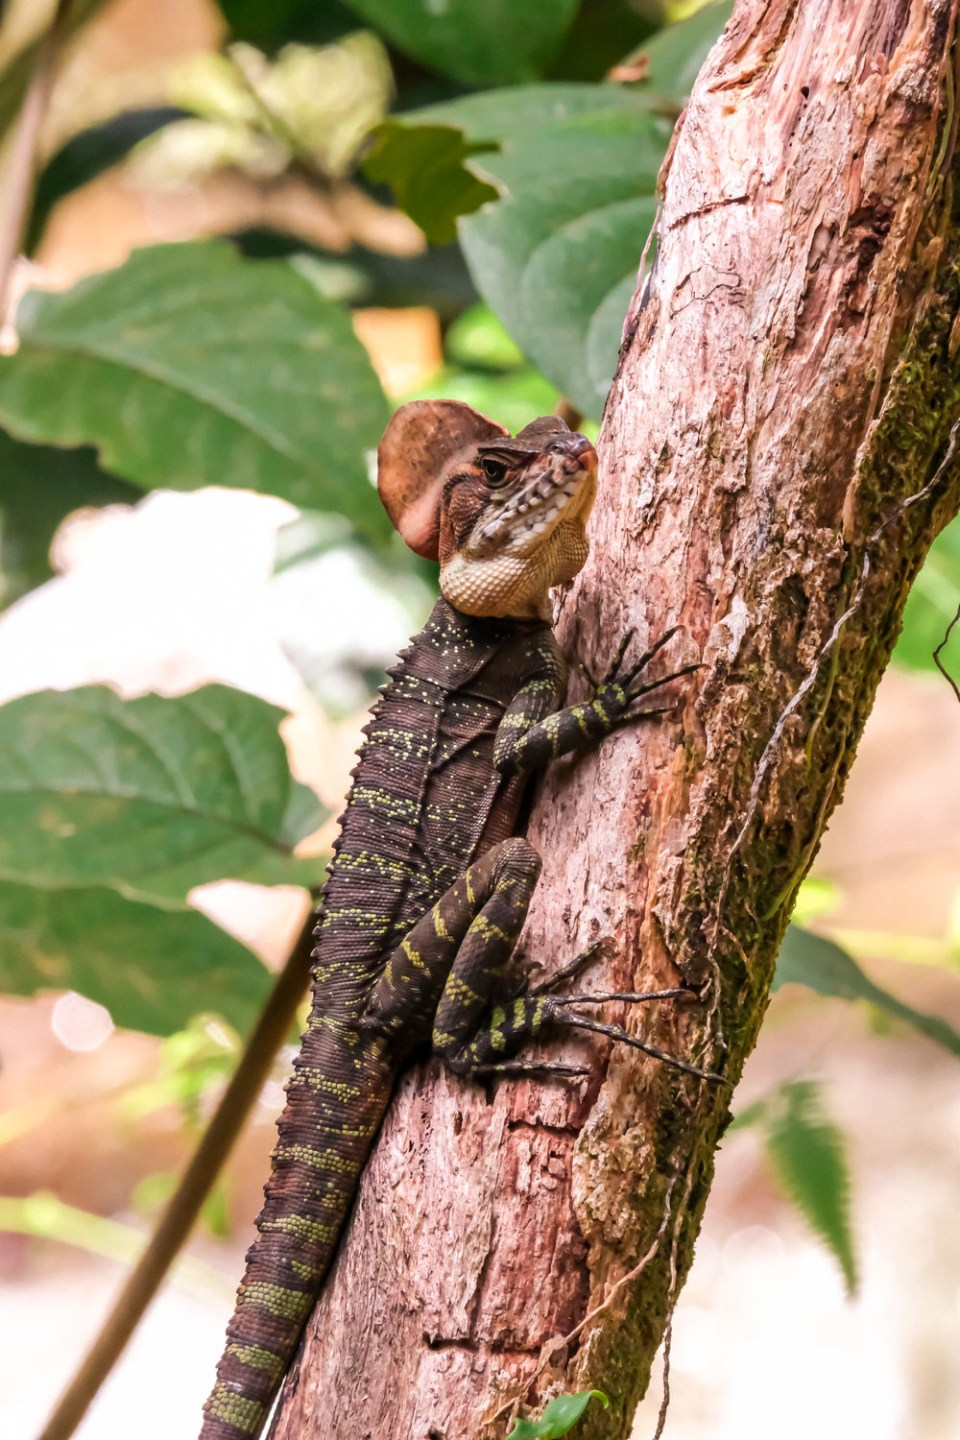 Lizard in Colombia